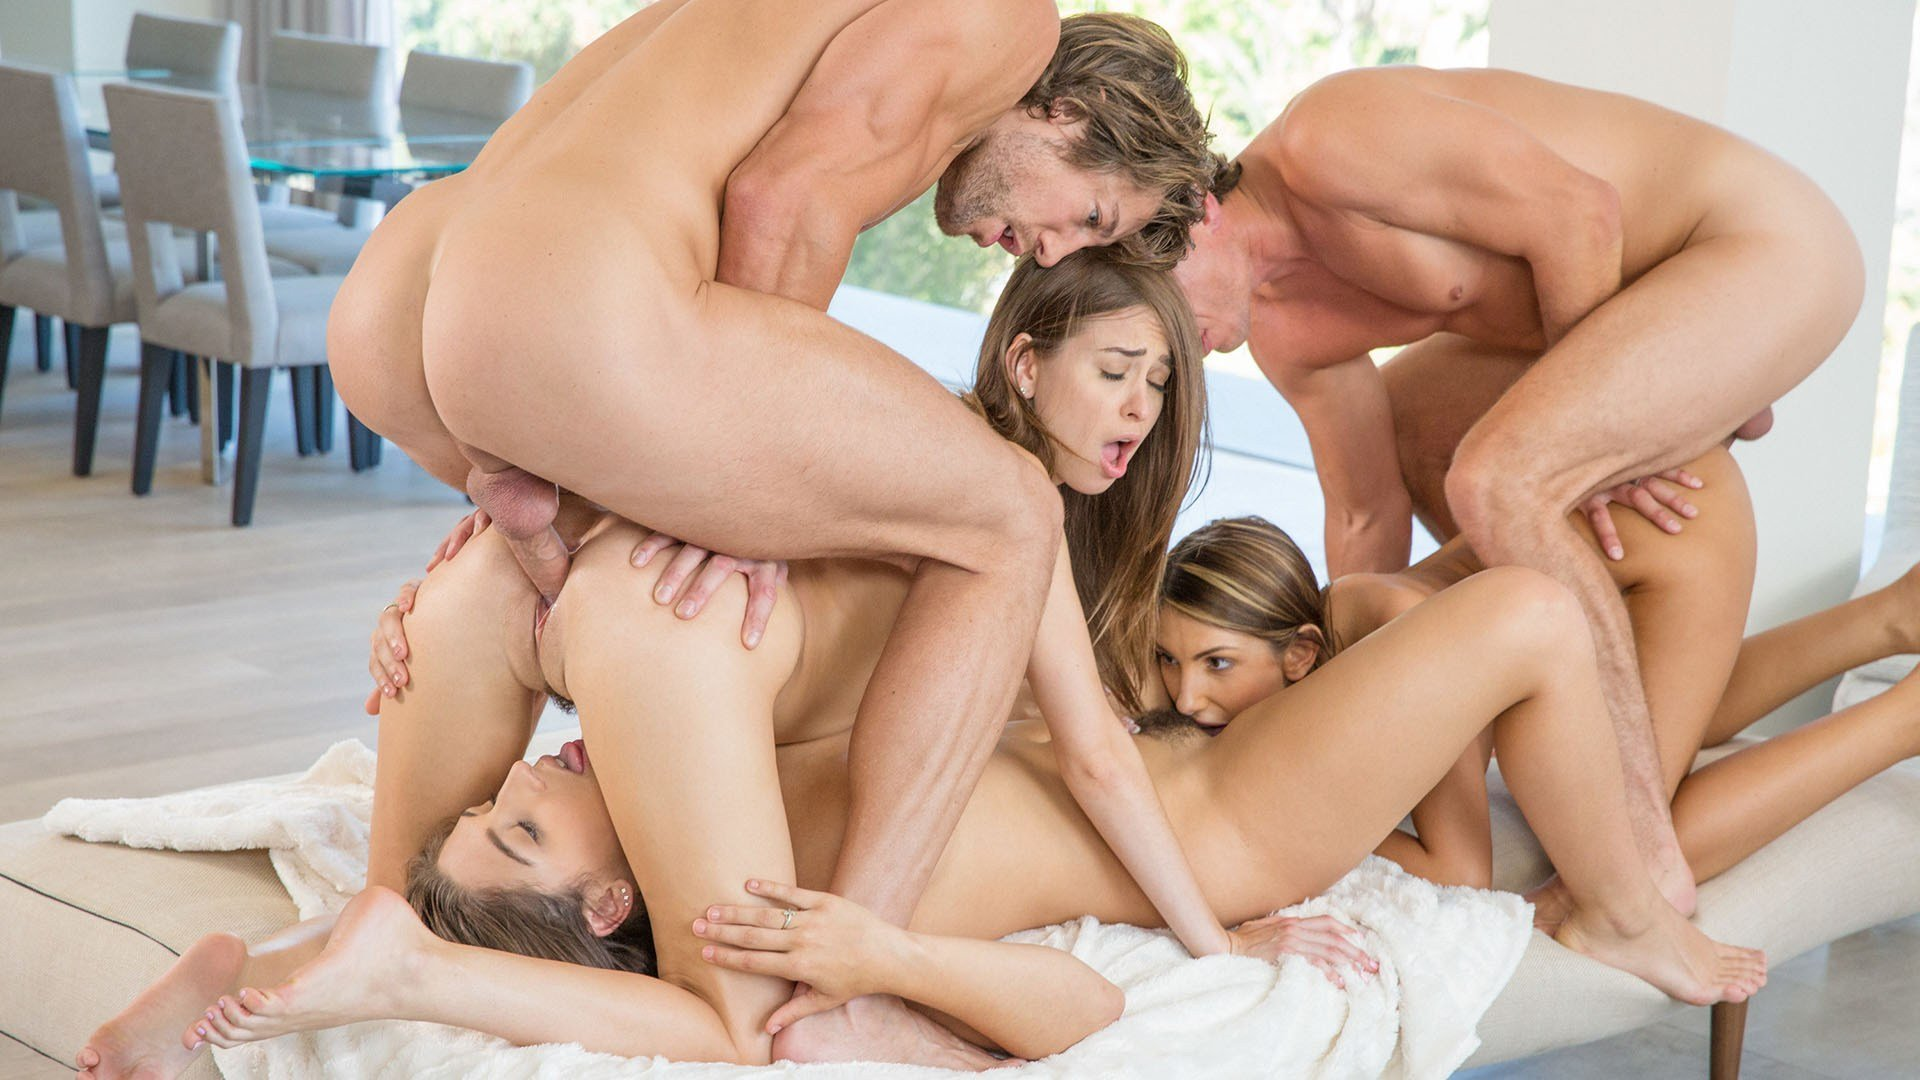 Live Sex Group Sex - Live group sex - Trends compilations site.